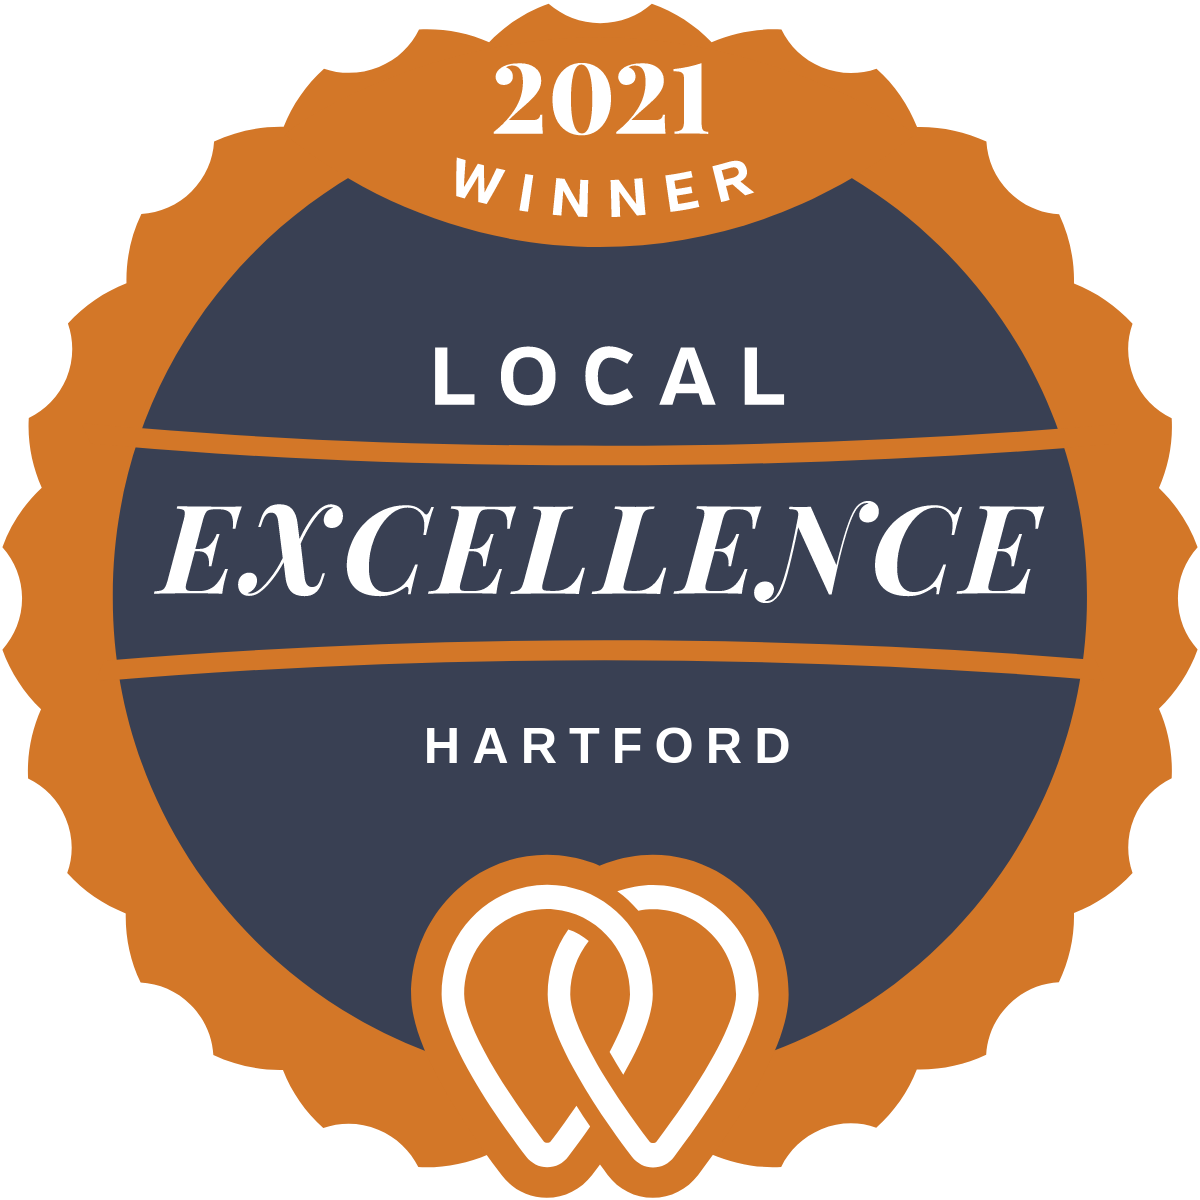 2021 Local Excellence Winner in Hartford, CT